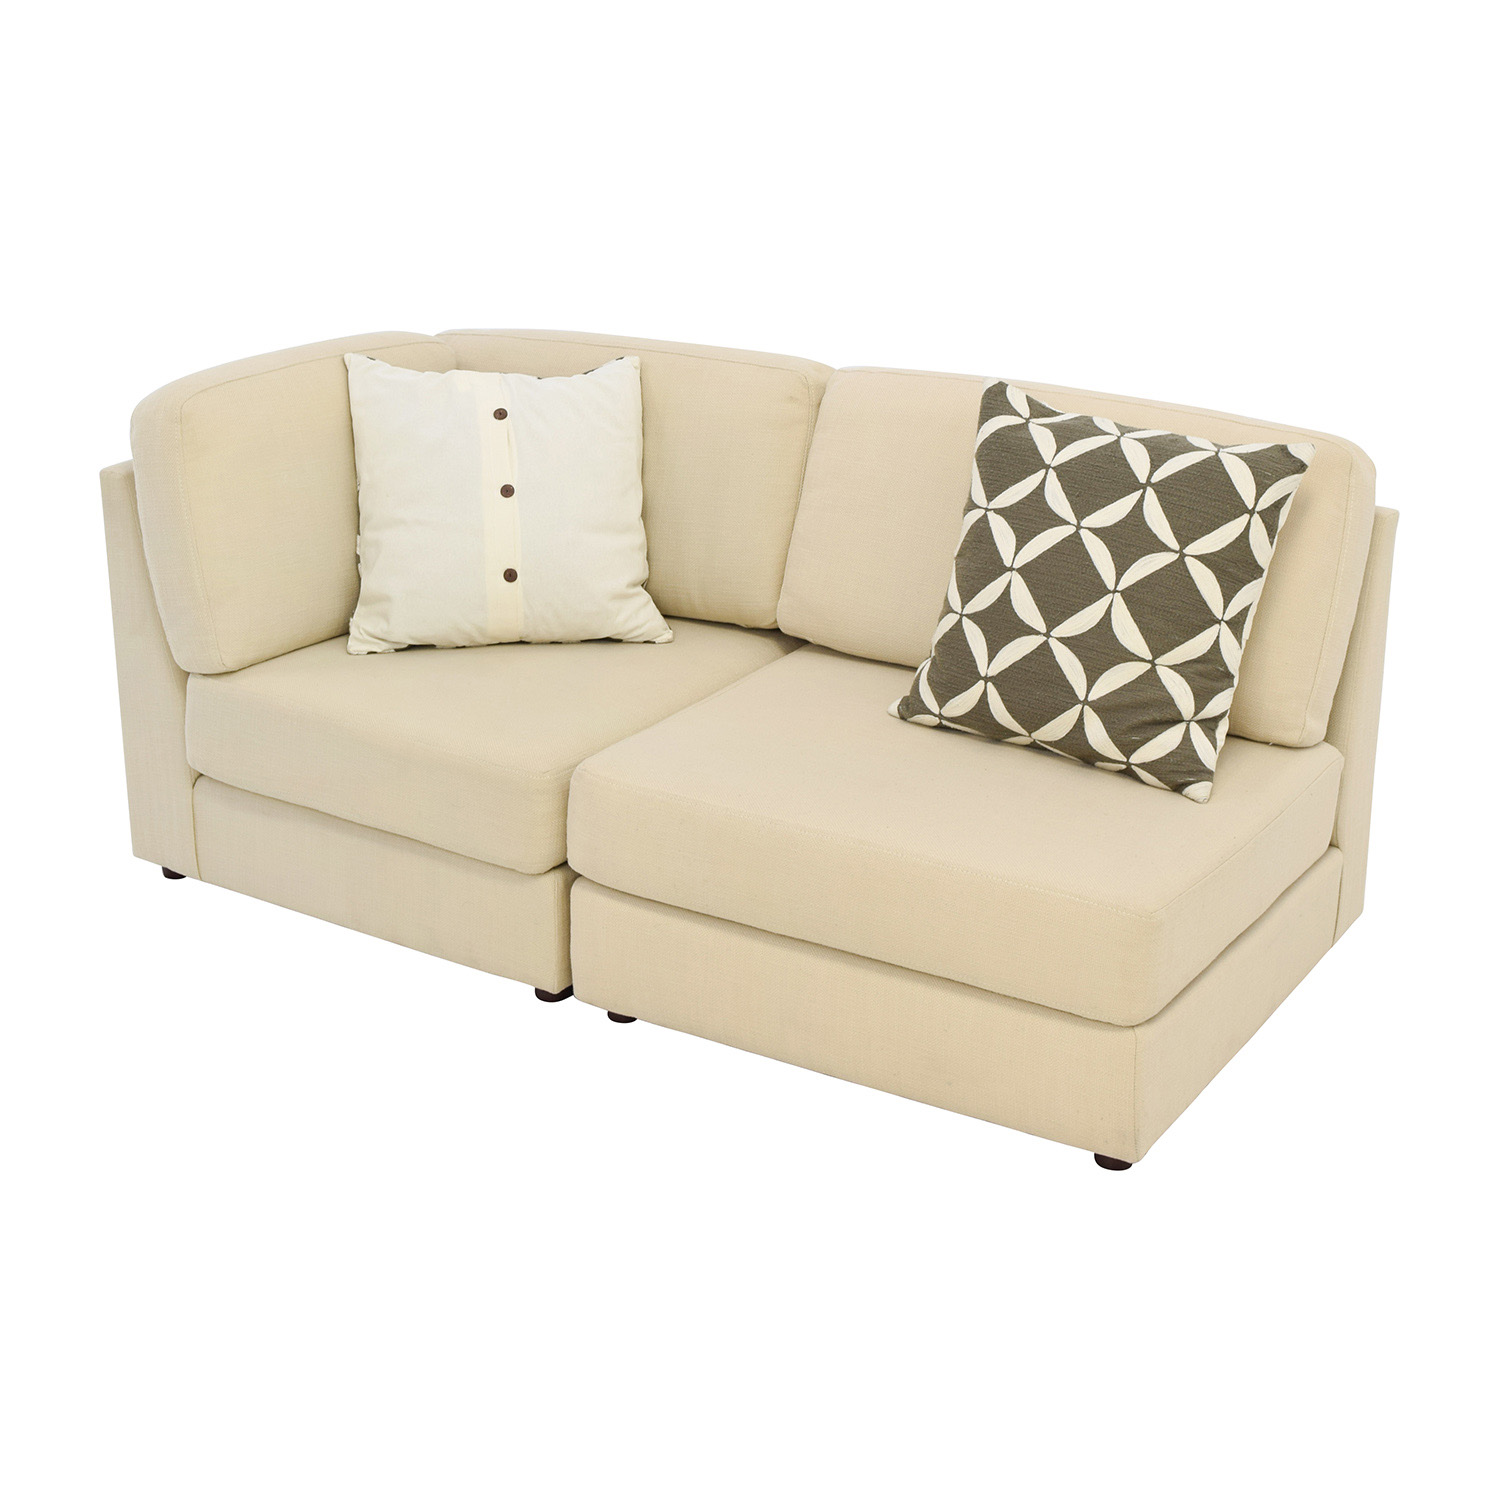 76 off west elm west elm cream chaise sofa or two for Couch with 2 chaises